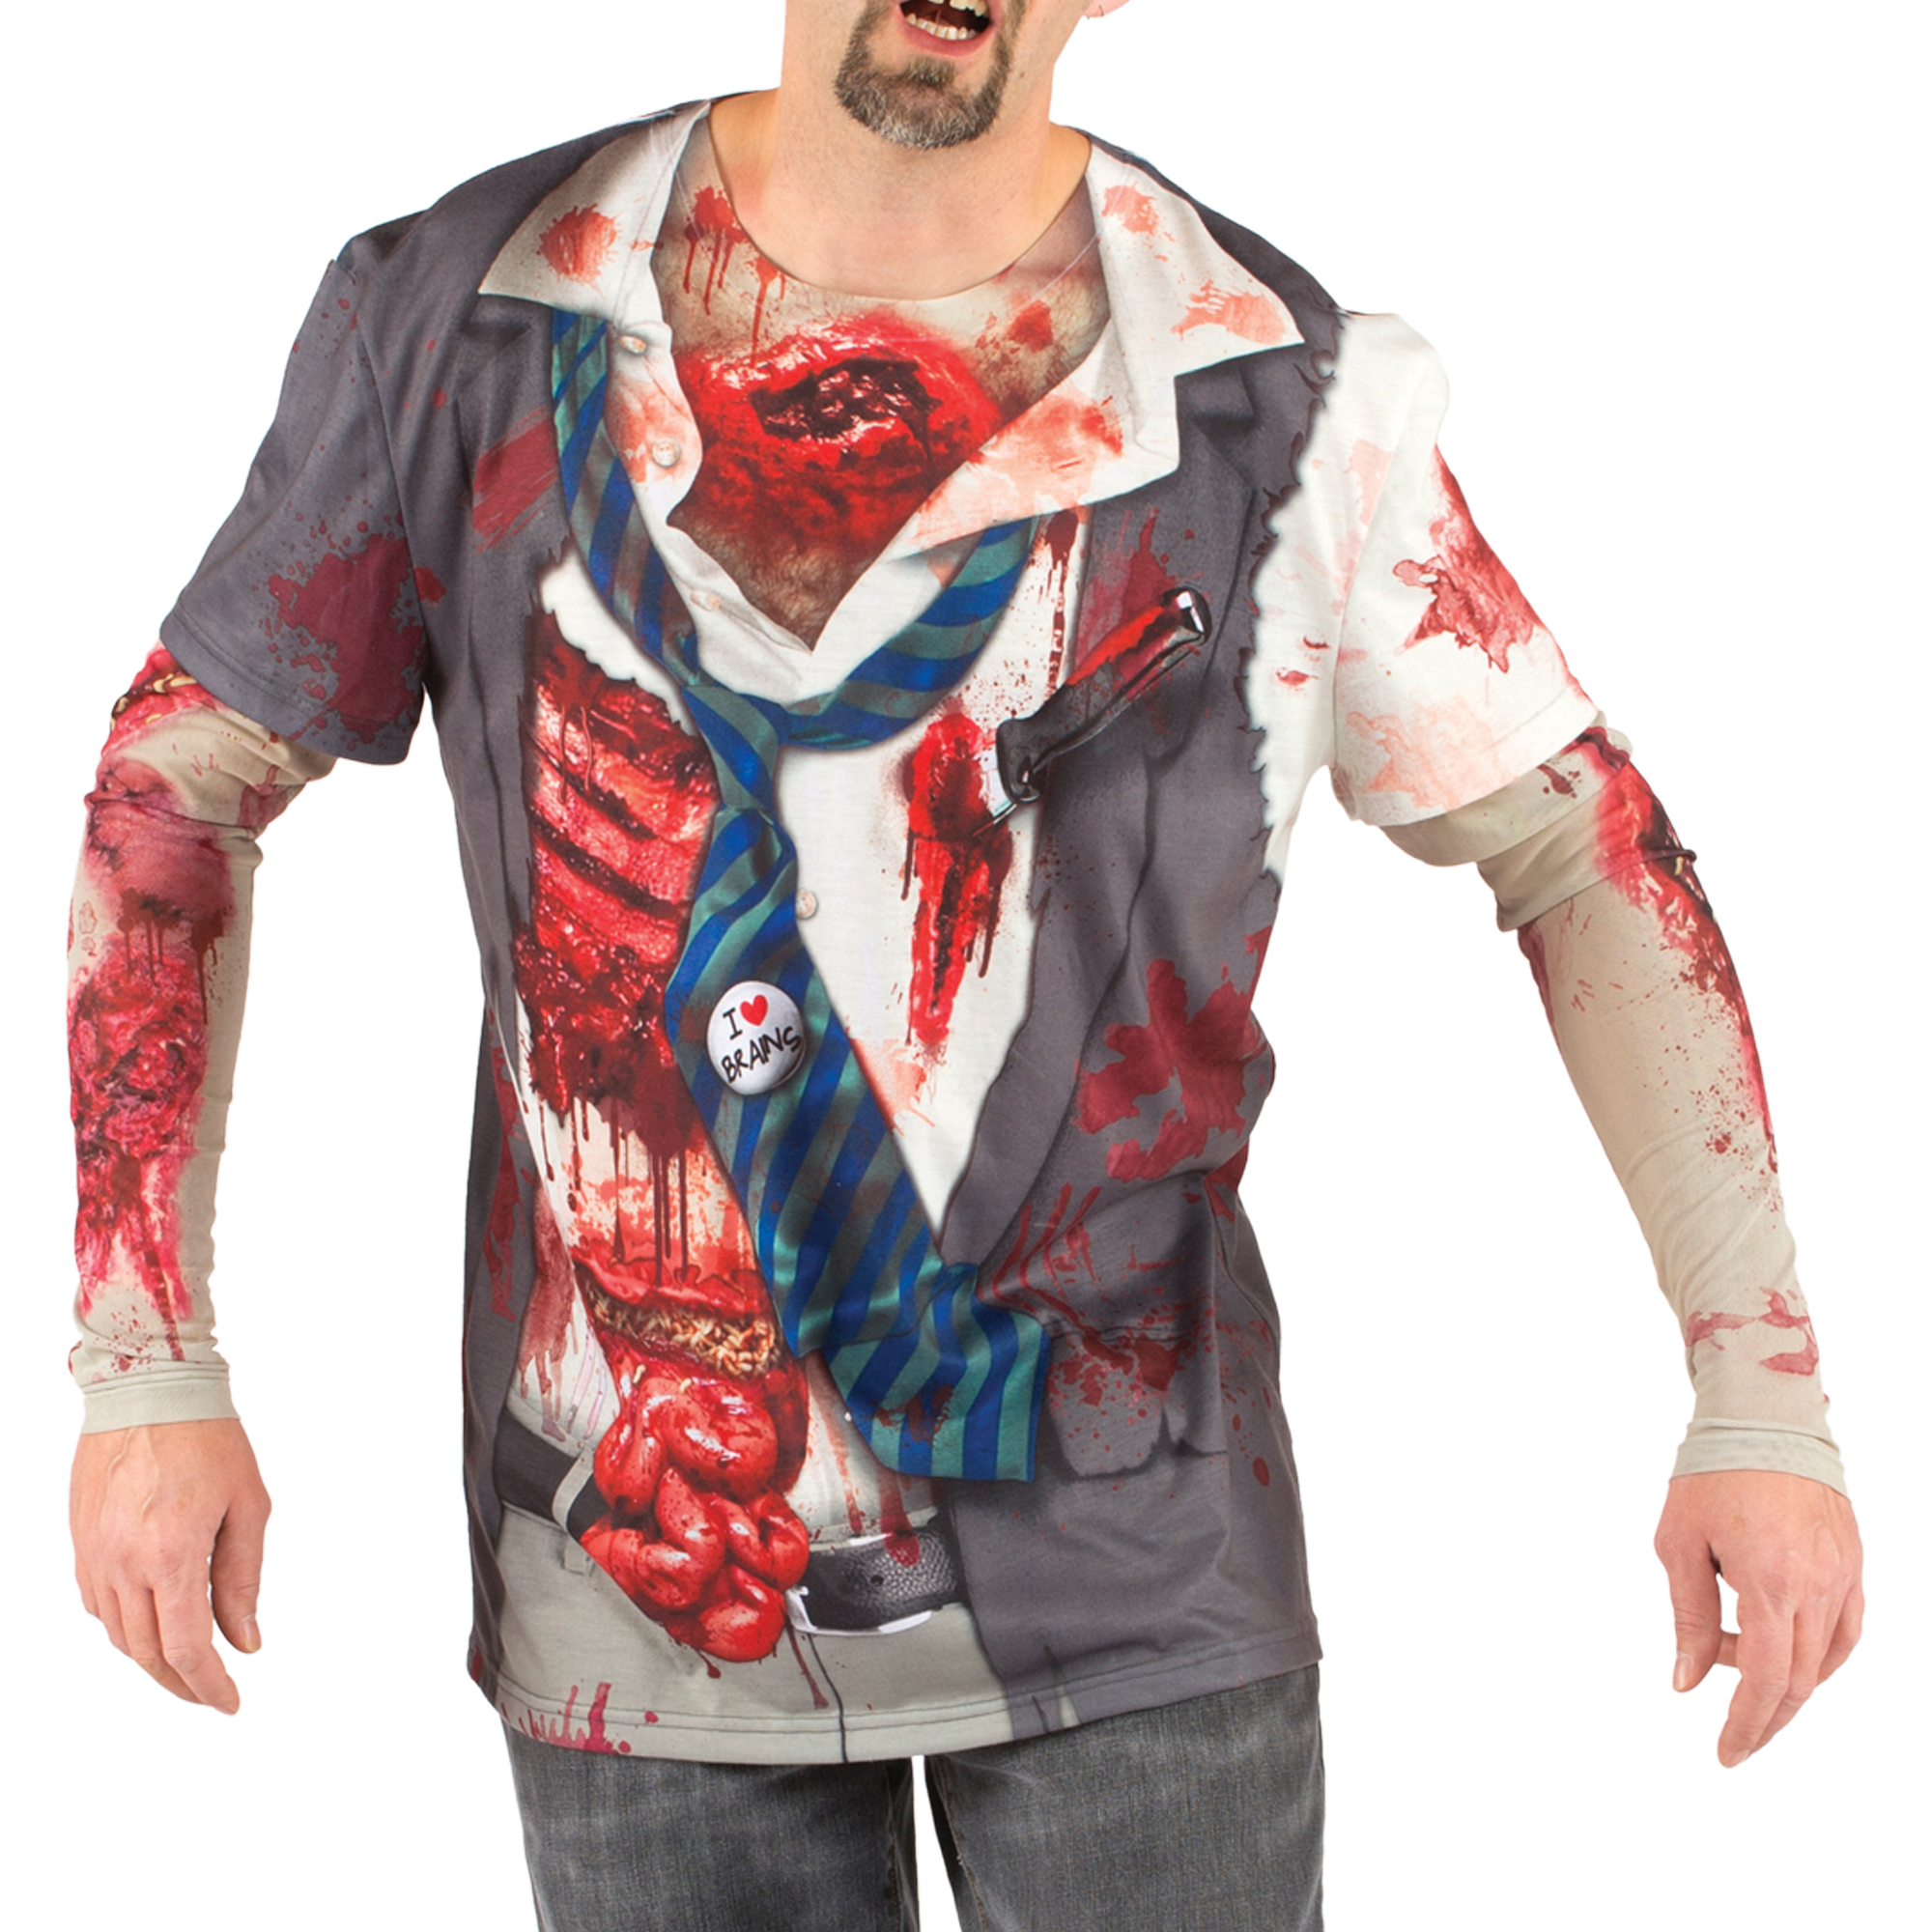 Men's Zombie Tee Shirt with Mesh Long Sleeves